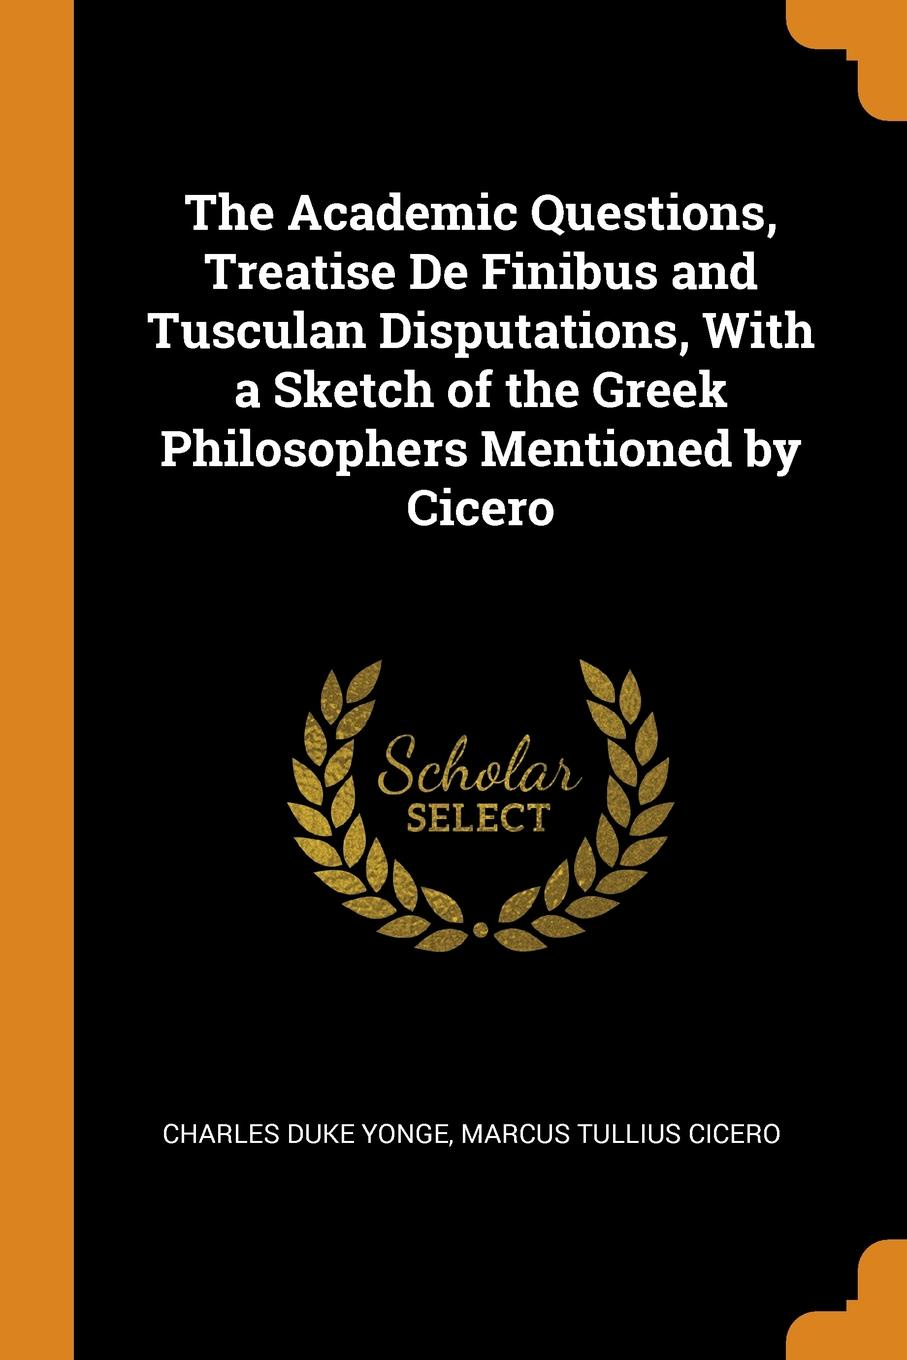 The Academic Questions, Treatise De Finibus and Tusculan Disputations, With a Sketch of the Greek Philosophers Mentioned by Cicero